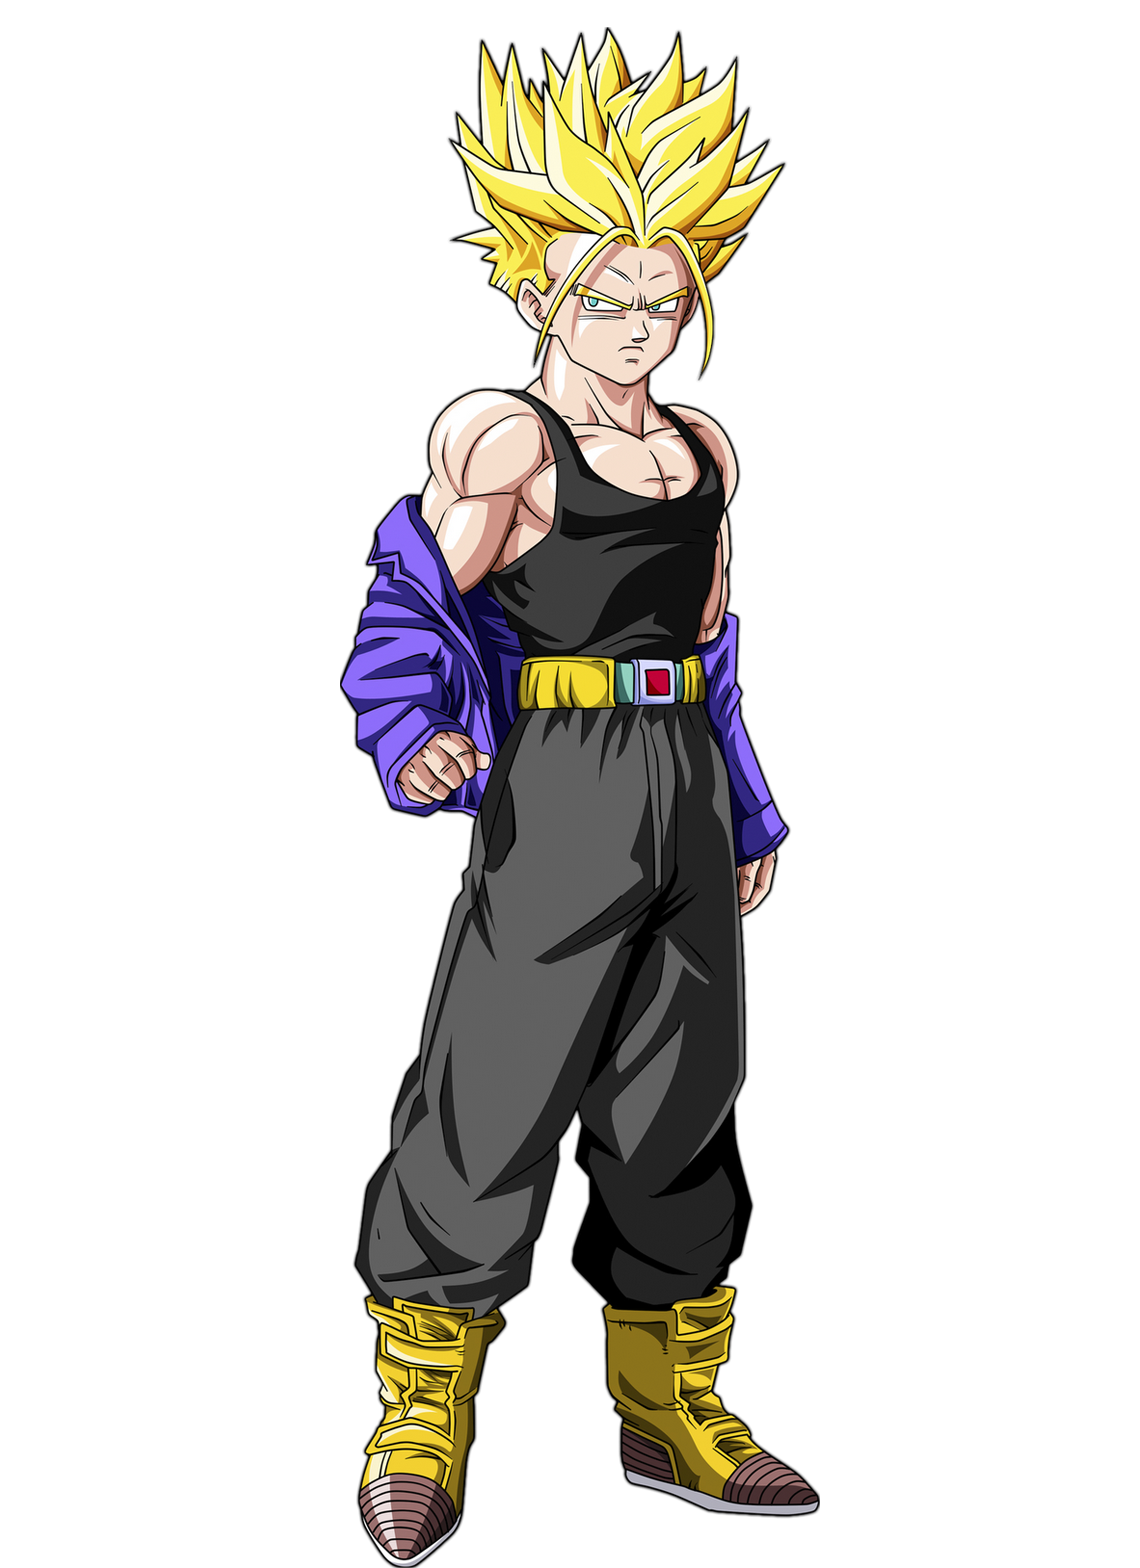 mirai trunks ssj no jacket dragon ball z pinterest dragon